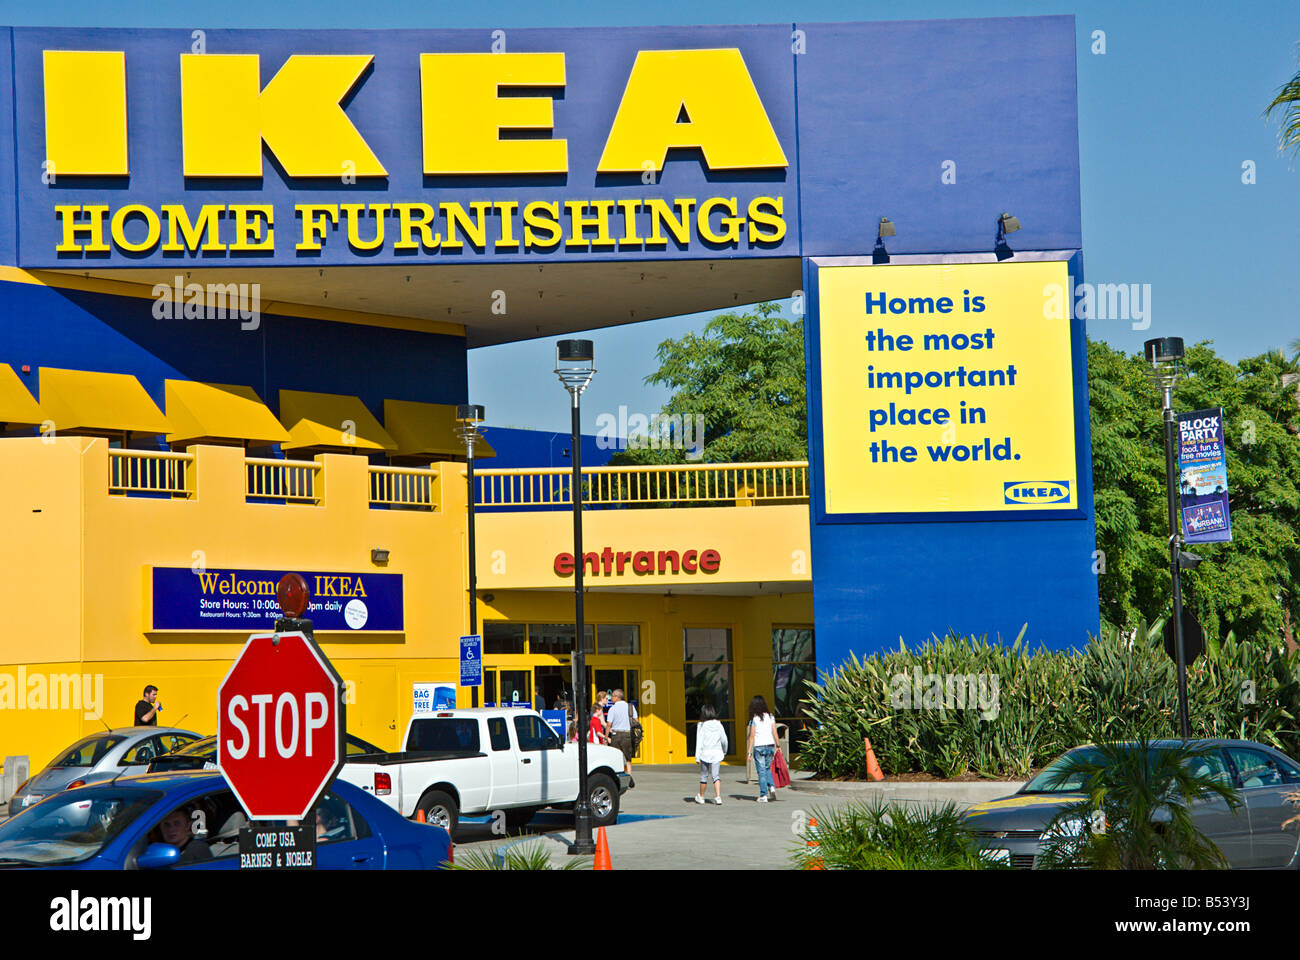 Ikea Burbank California Sofas, Chairs, Beds, Drawers, Tables, Desks, Floors